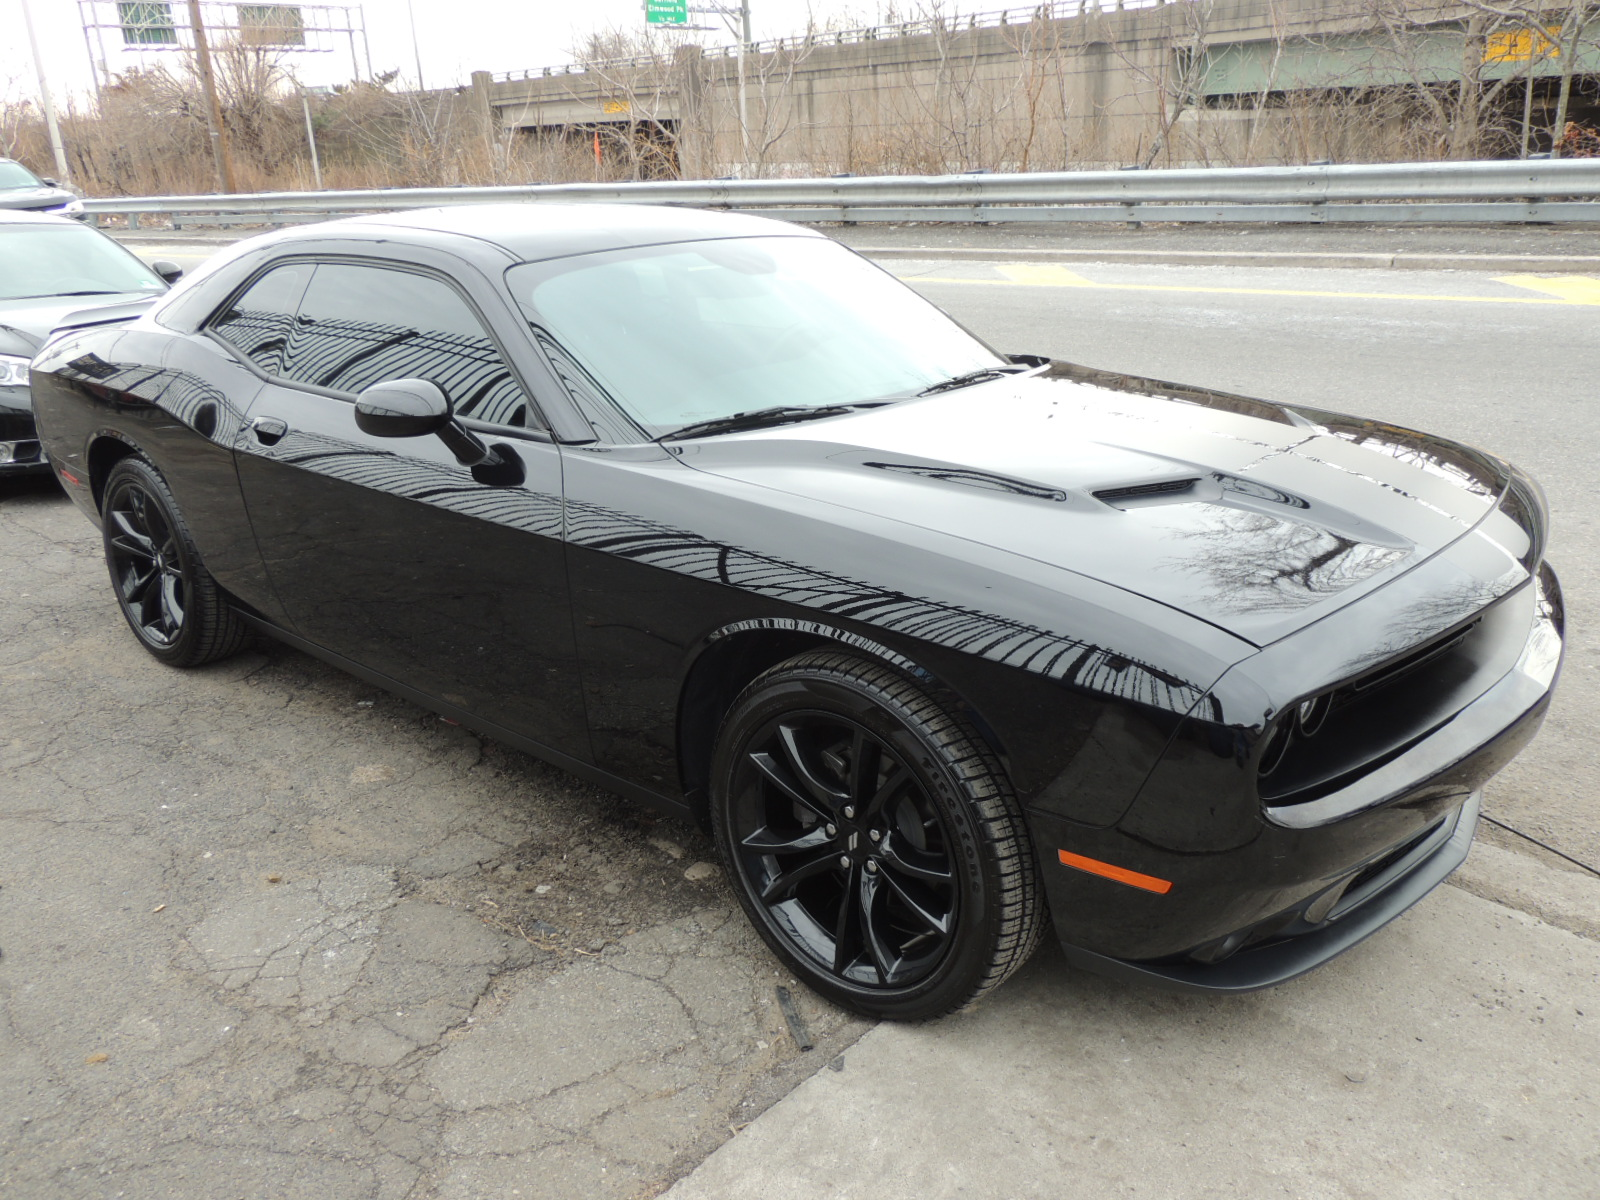 Salvage Rebuildable Repairables DODGE CHALLENGER for Sale